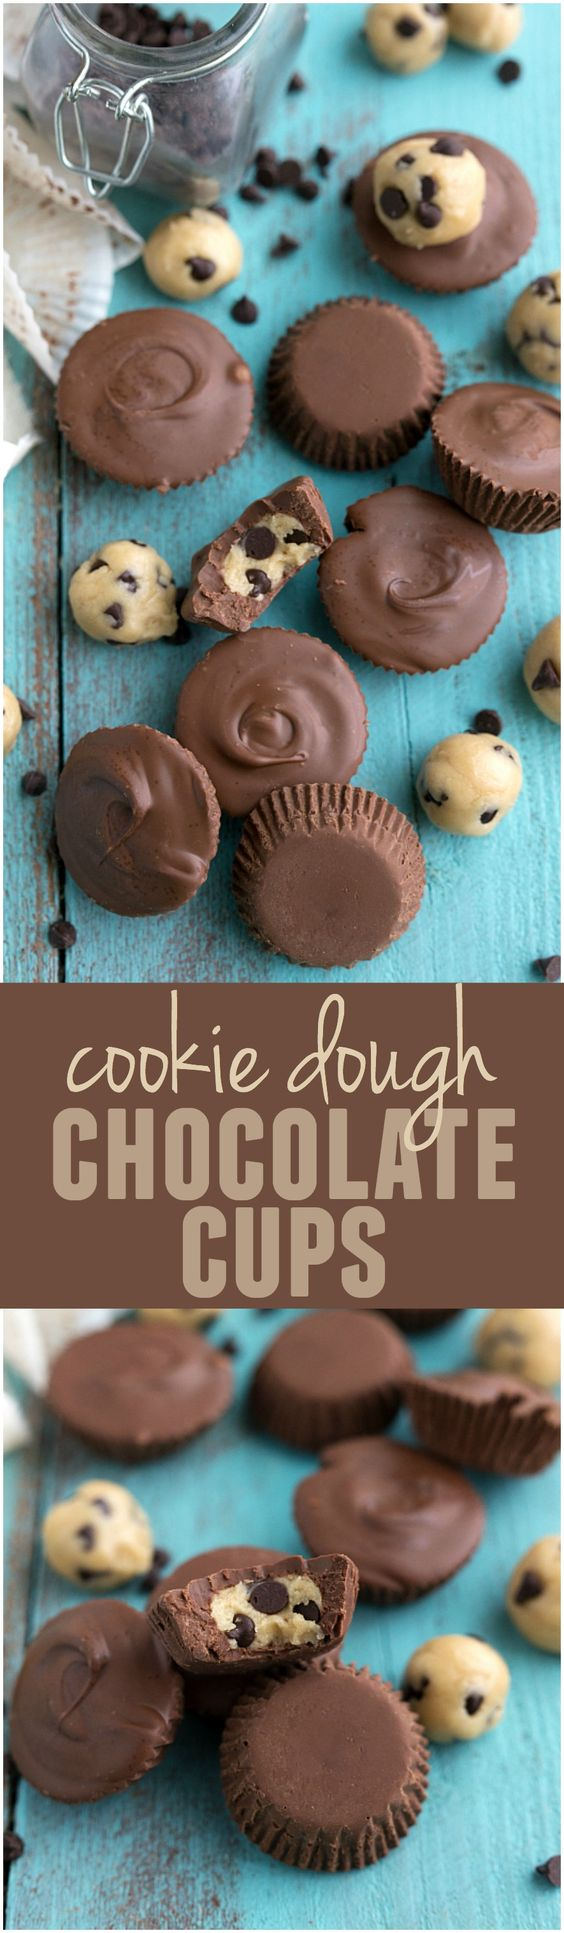 These Cookie Dough Chocolate Cups are NO BAKE and perfect if you love cookie dough!